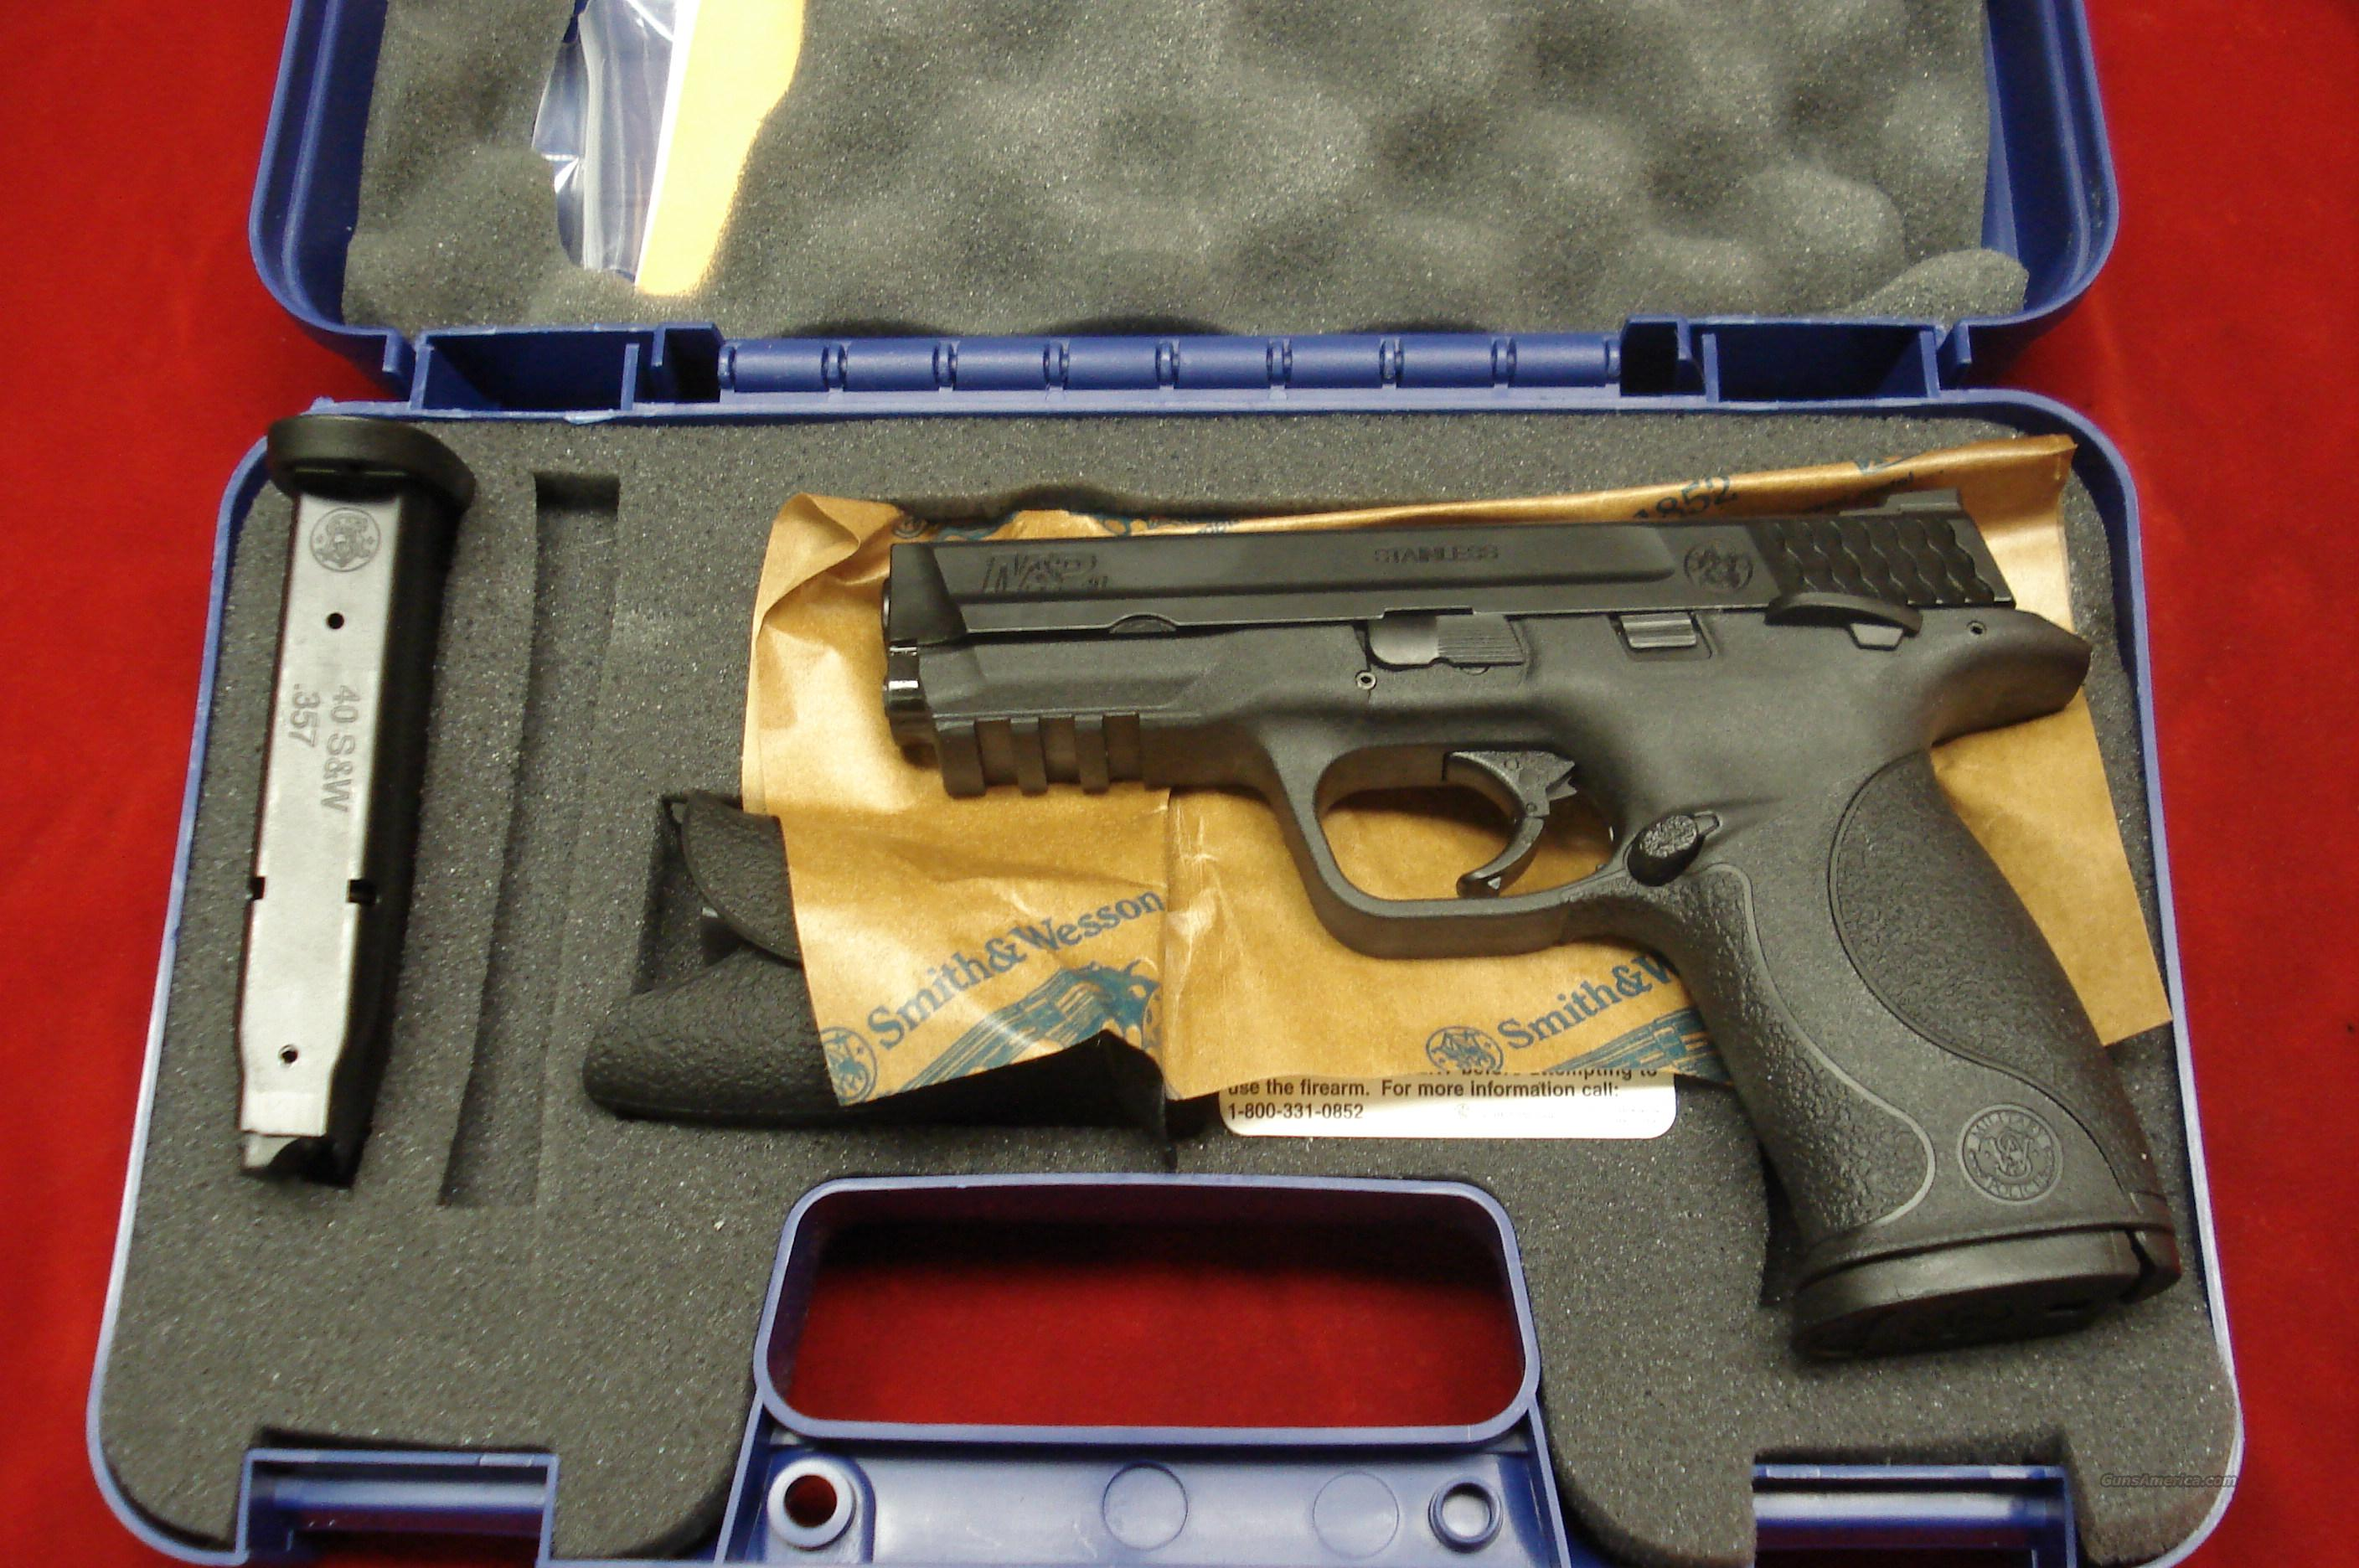 SMITH AND WESSON M&P .40CAL HIGH/CAP W/THUMB SAFETY NEW   Guns > Pistols > Smith & Wesson Pistols - Autos > Polymer Frame